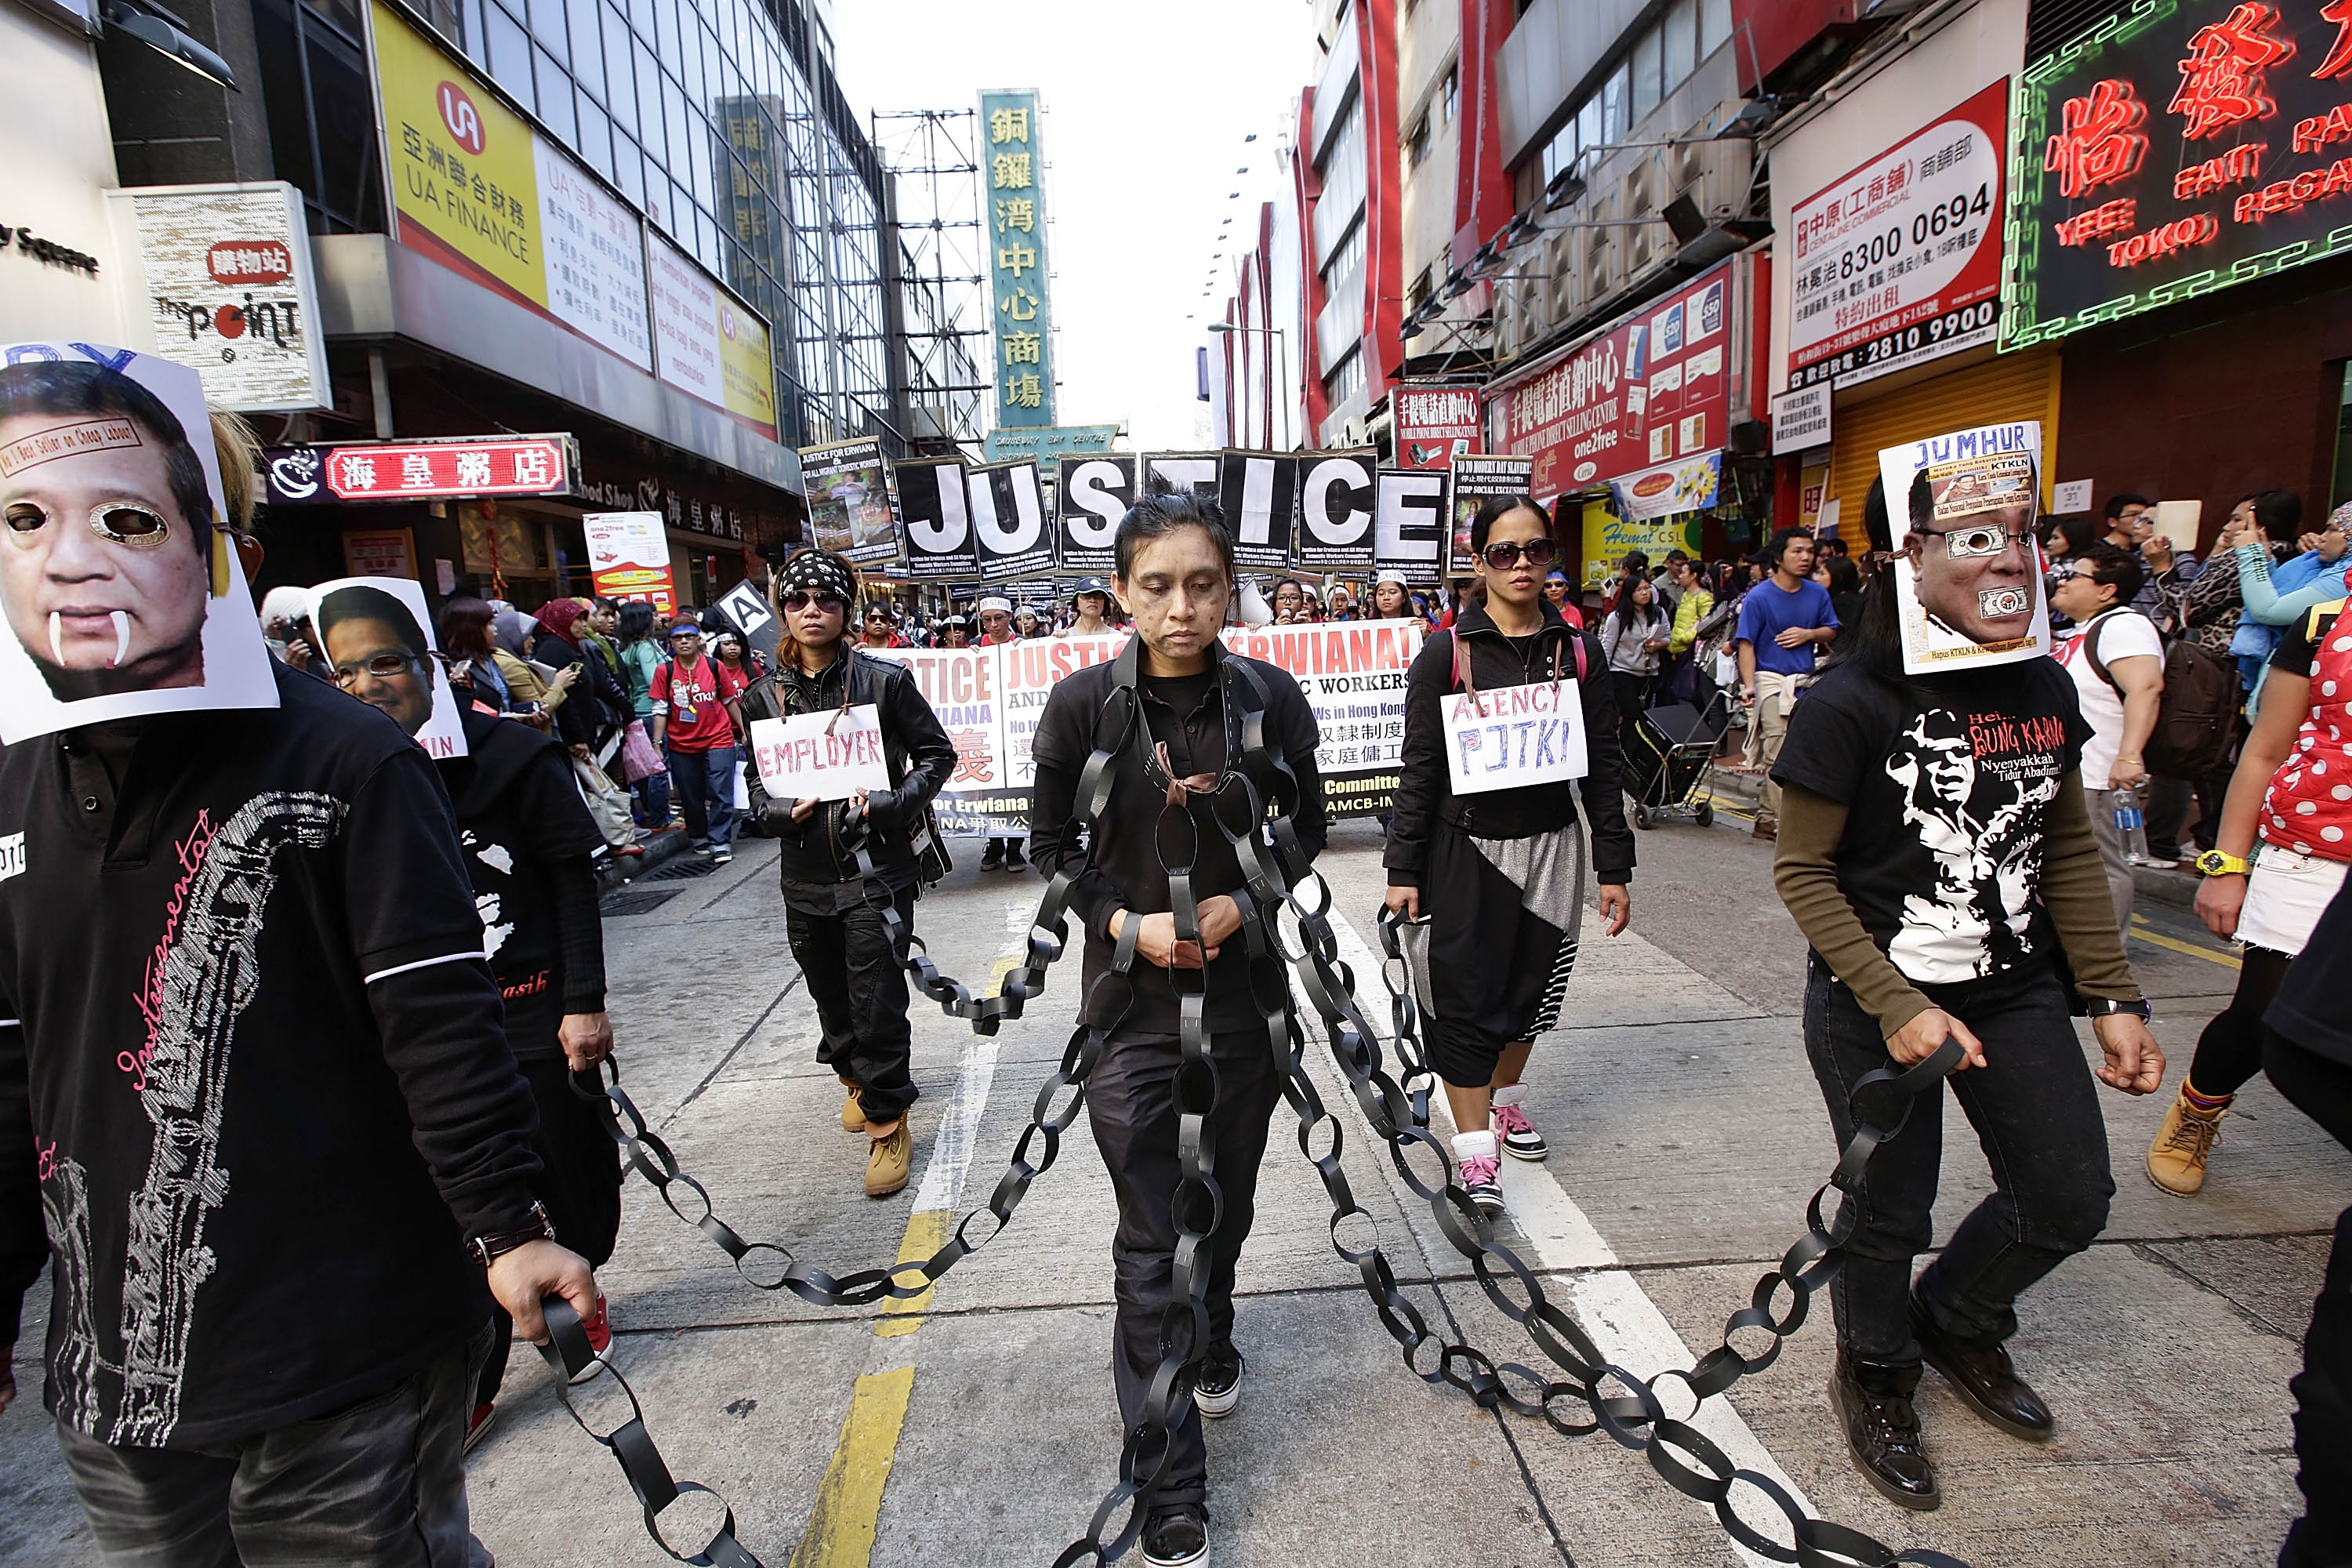 Indonesian domestic workers protest in the streets of Causeway Bay to demand better working conditions in Hong Kong on Jan. 26, 2014